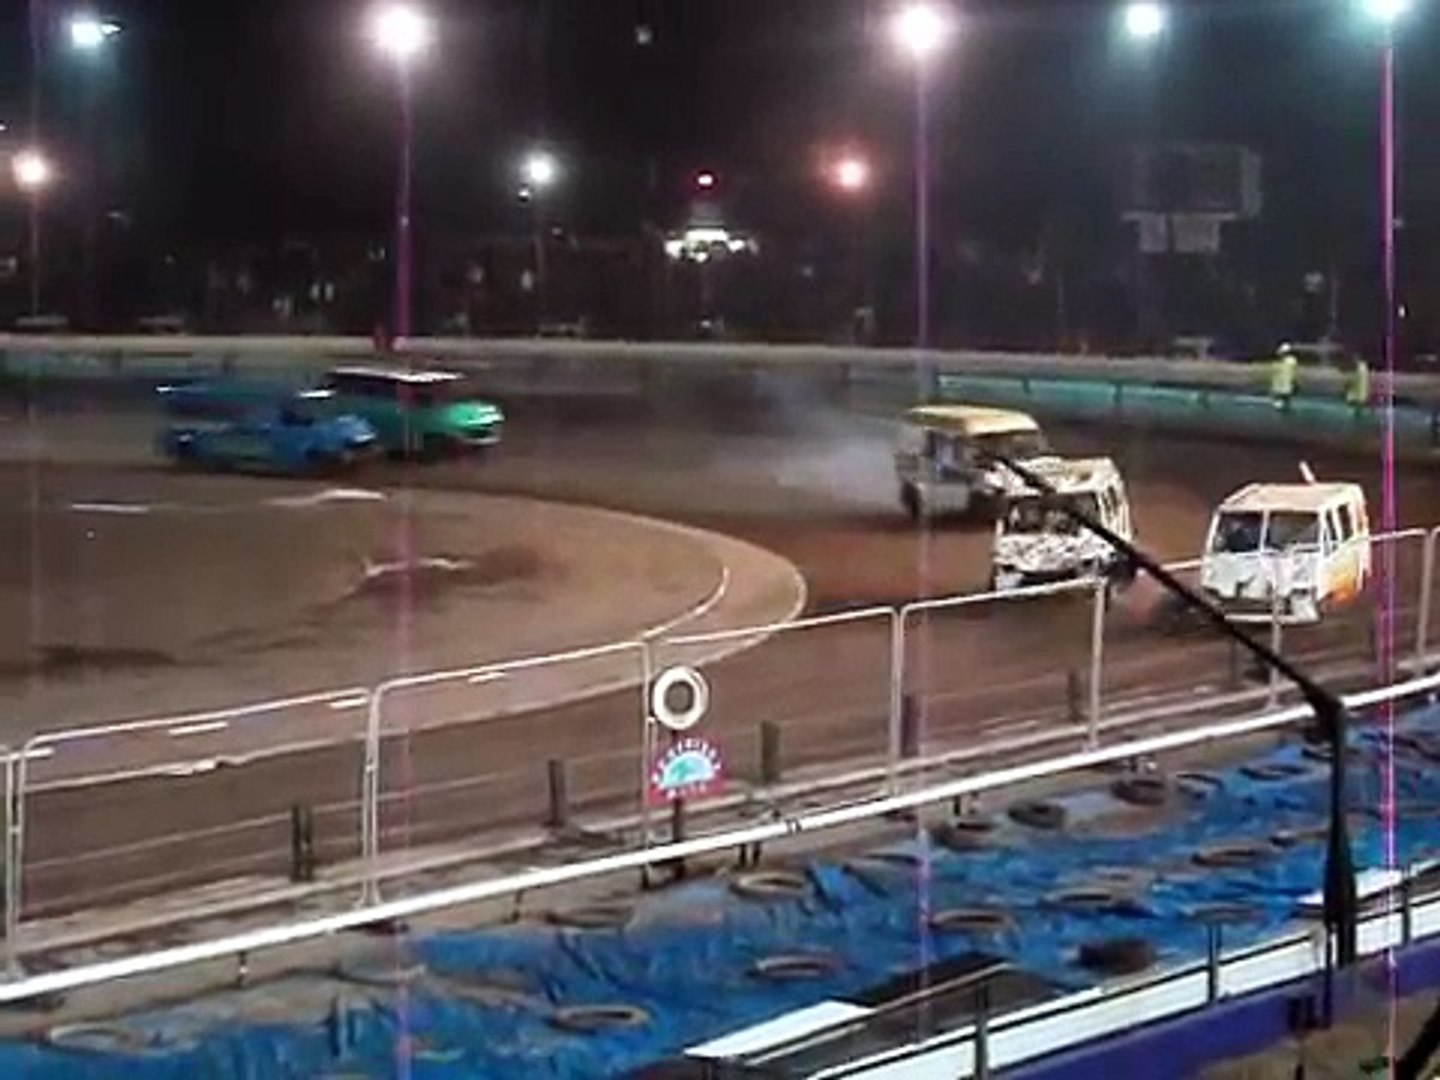 transit bangers - heat 1 @ coventry 12th march 2016